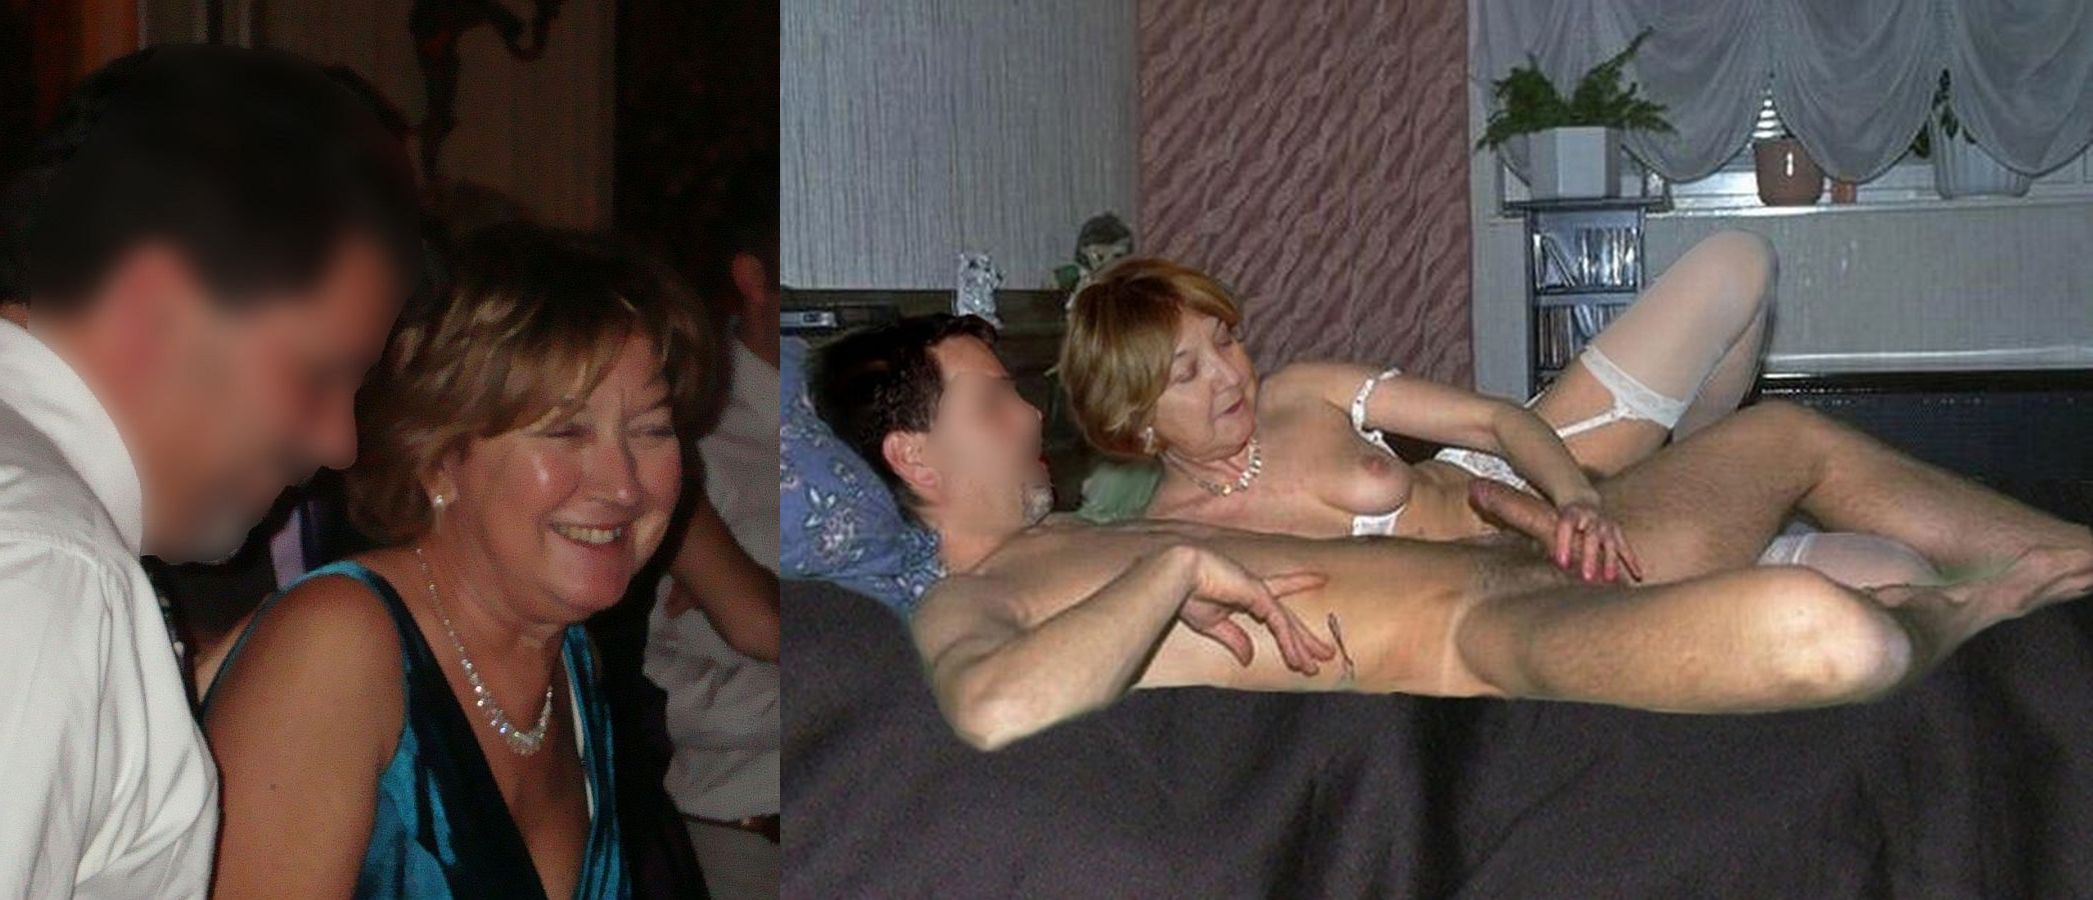 Amateur cheating wives pics